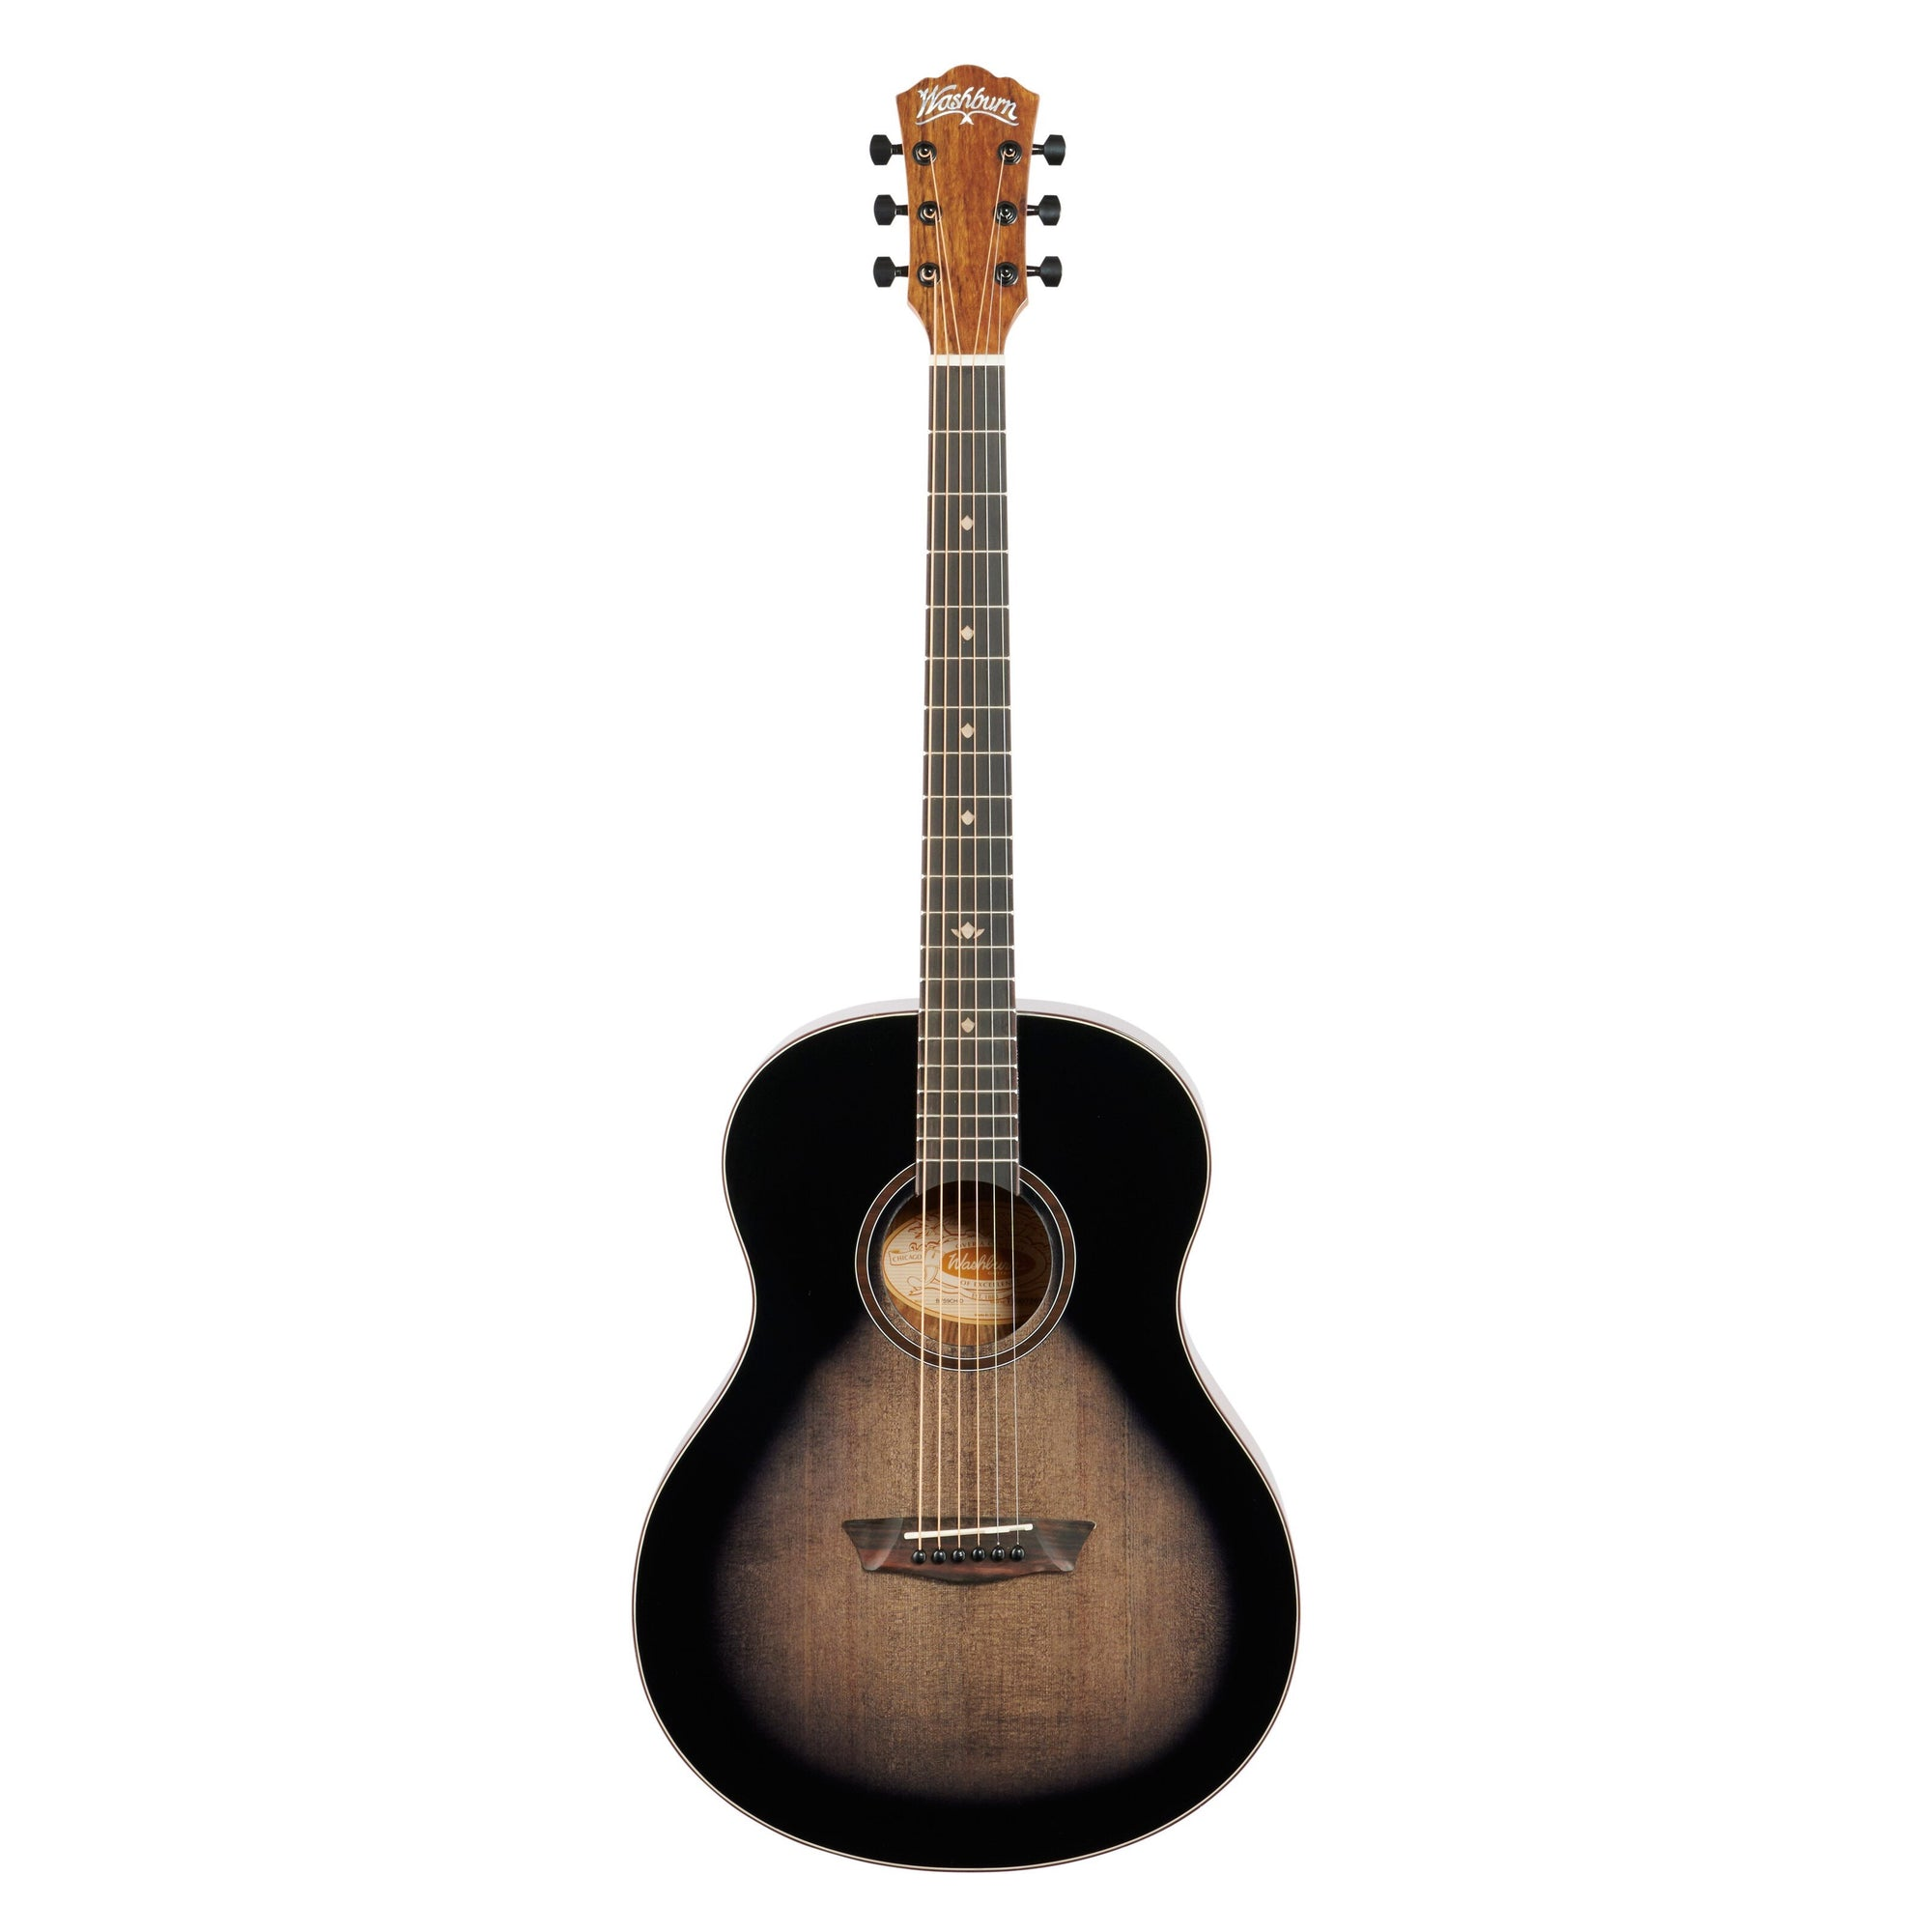 Washburn Bella Tono Novo S9 Acoustic Guitar, Charcoal Burst